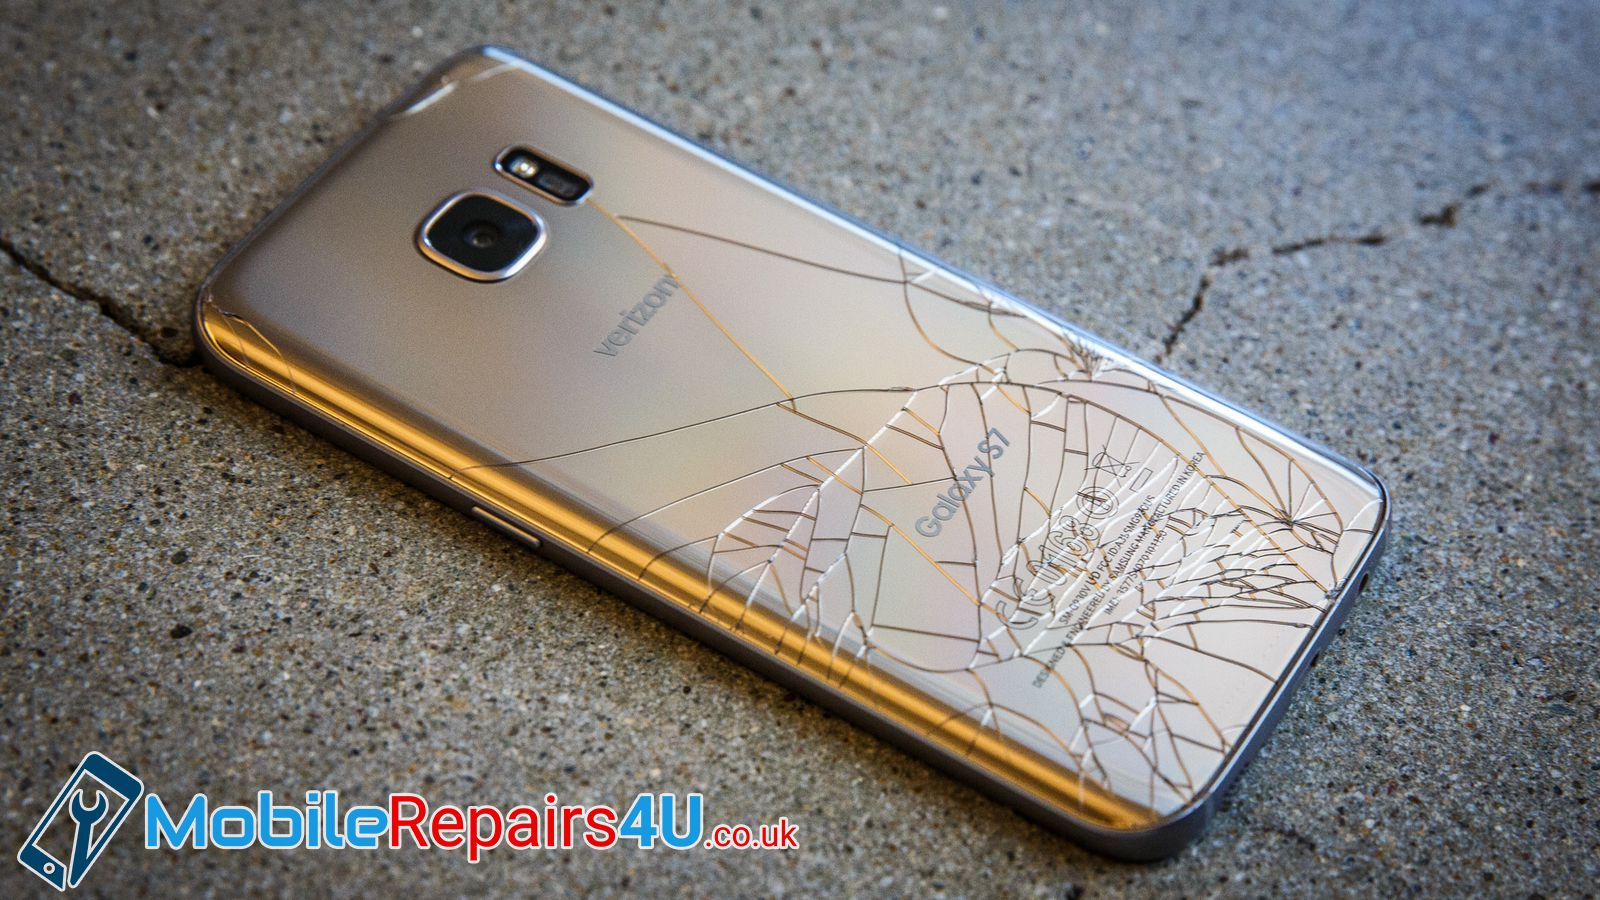 Repairing Damaged Rear Of Your Mobile Phone Is As Easy As Child S Play For Mobilerepairs4u Get Your Fixes Booked